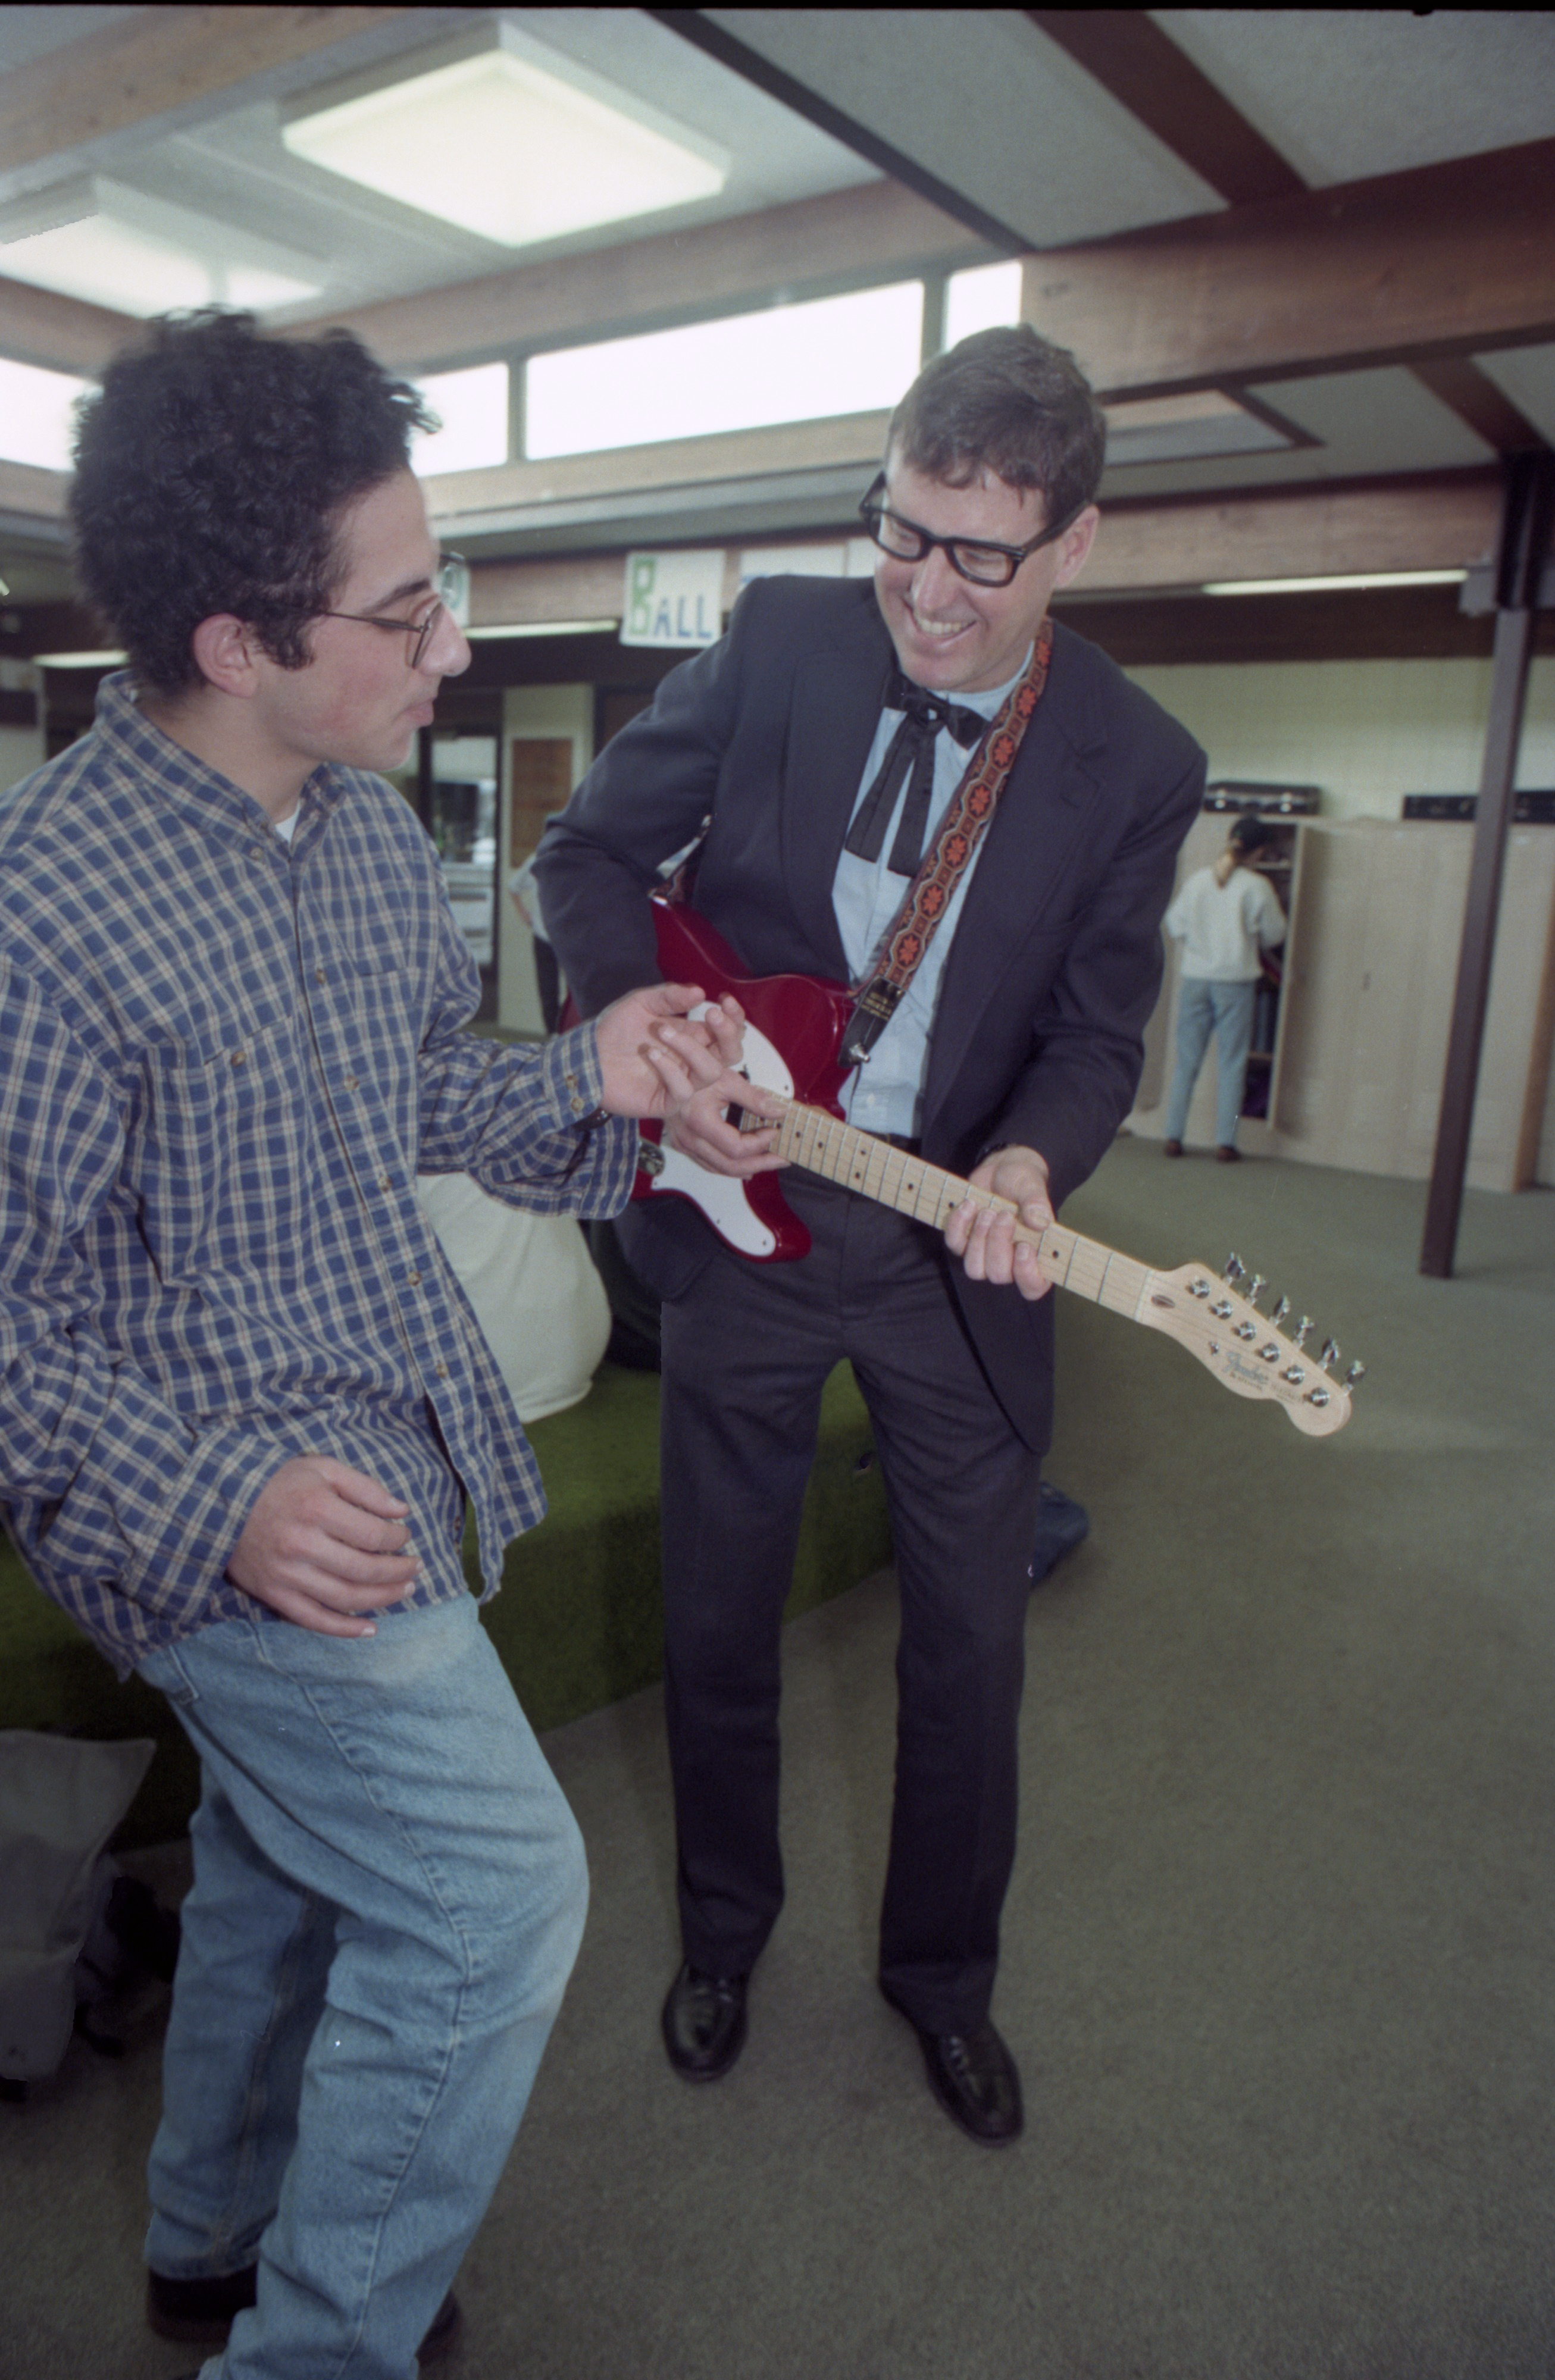 Headmaster, Tony Paulus As Buddy Holly For Greenhills Annual Auction With Student Aaron Nathan, February 26, 1994 image